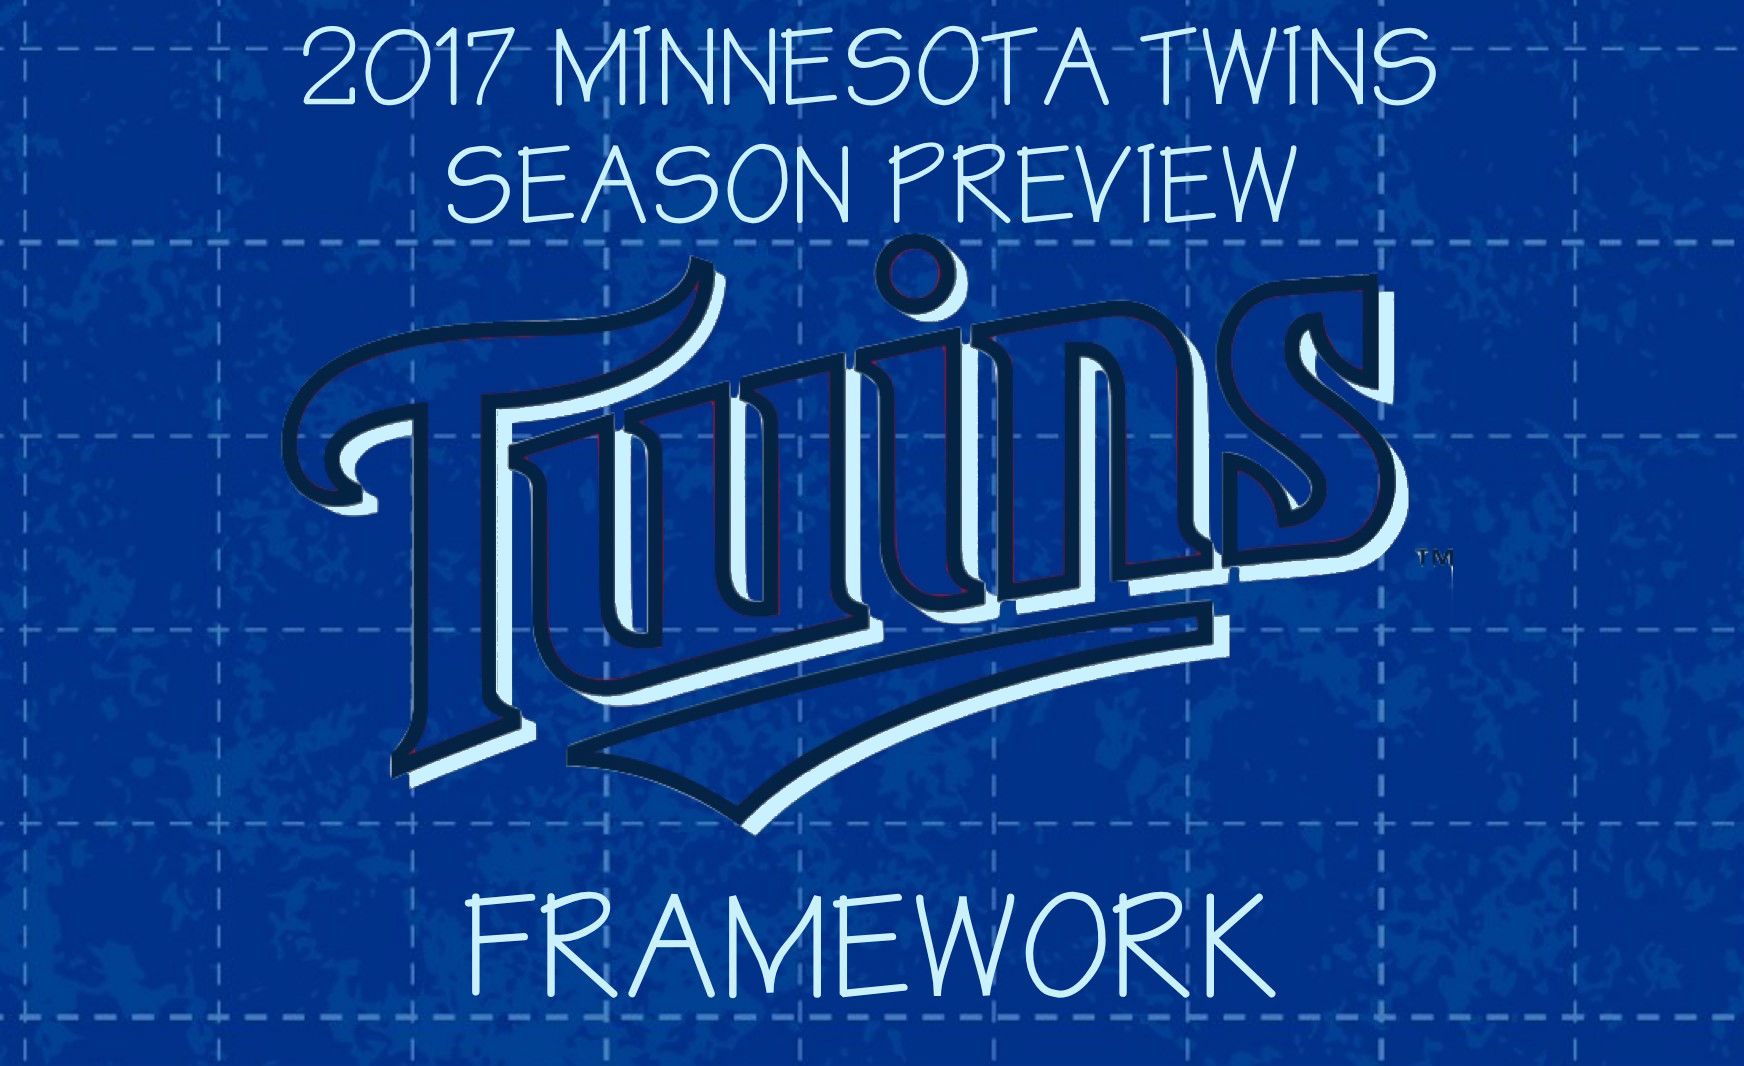 2017 Minnesota Twins Season Preview - Framework